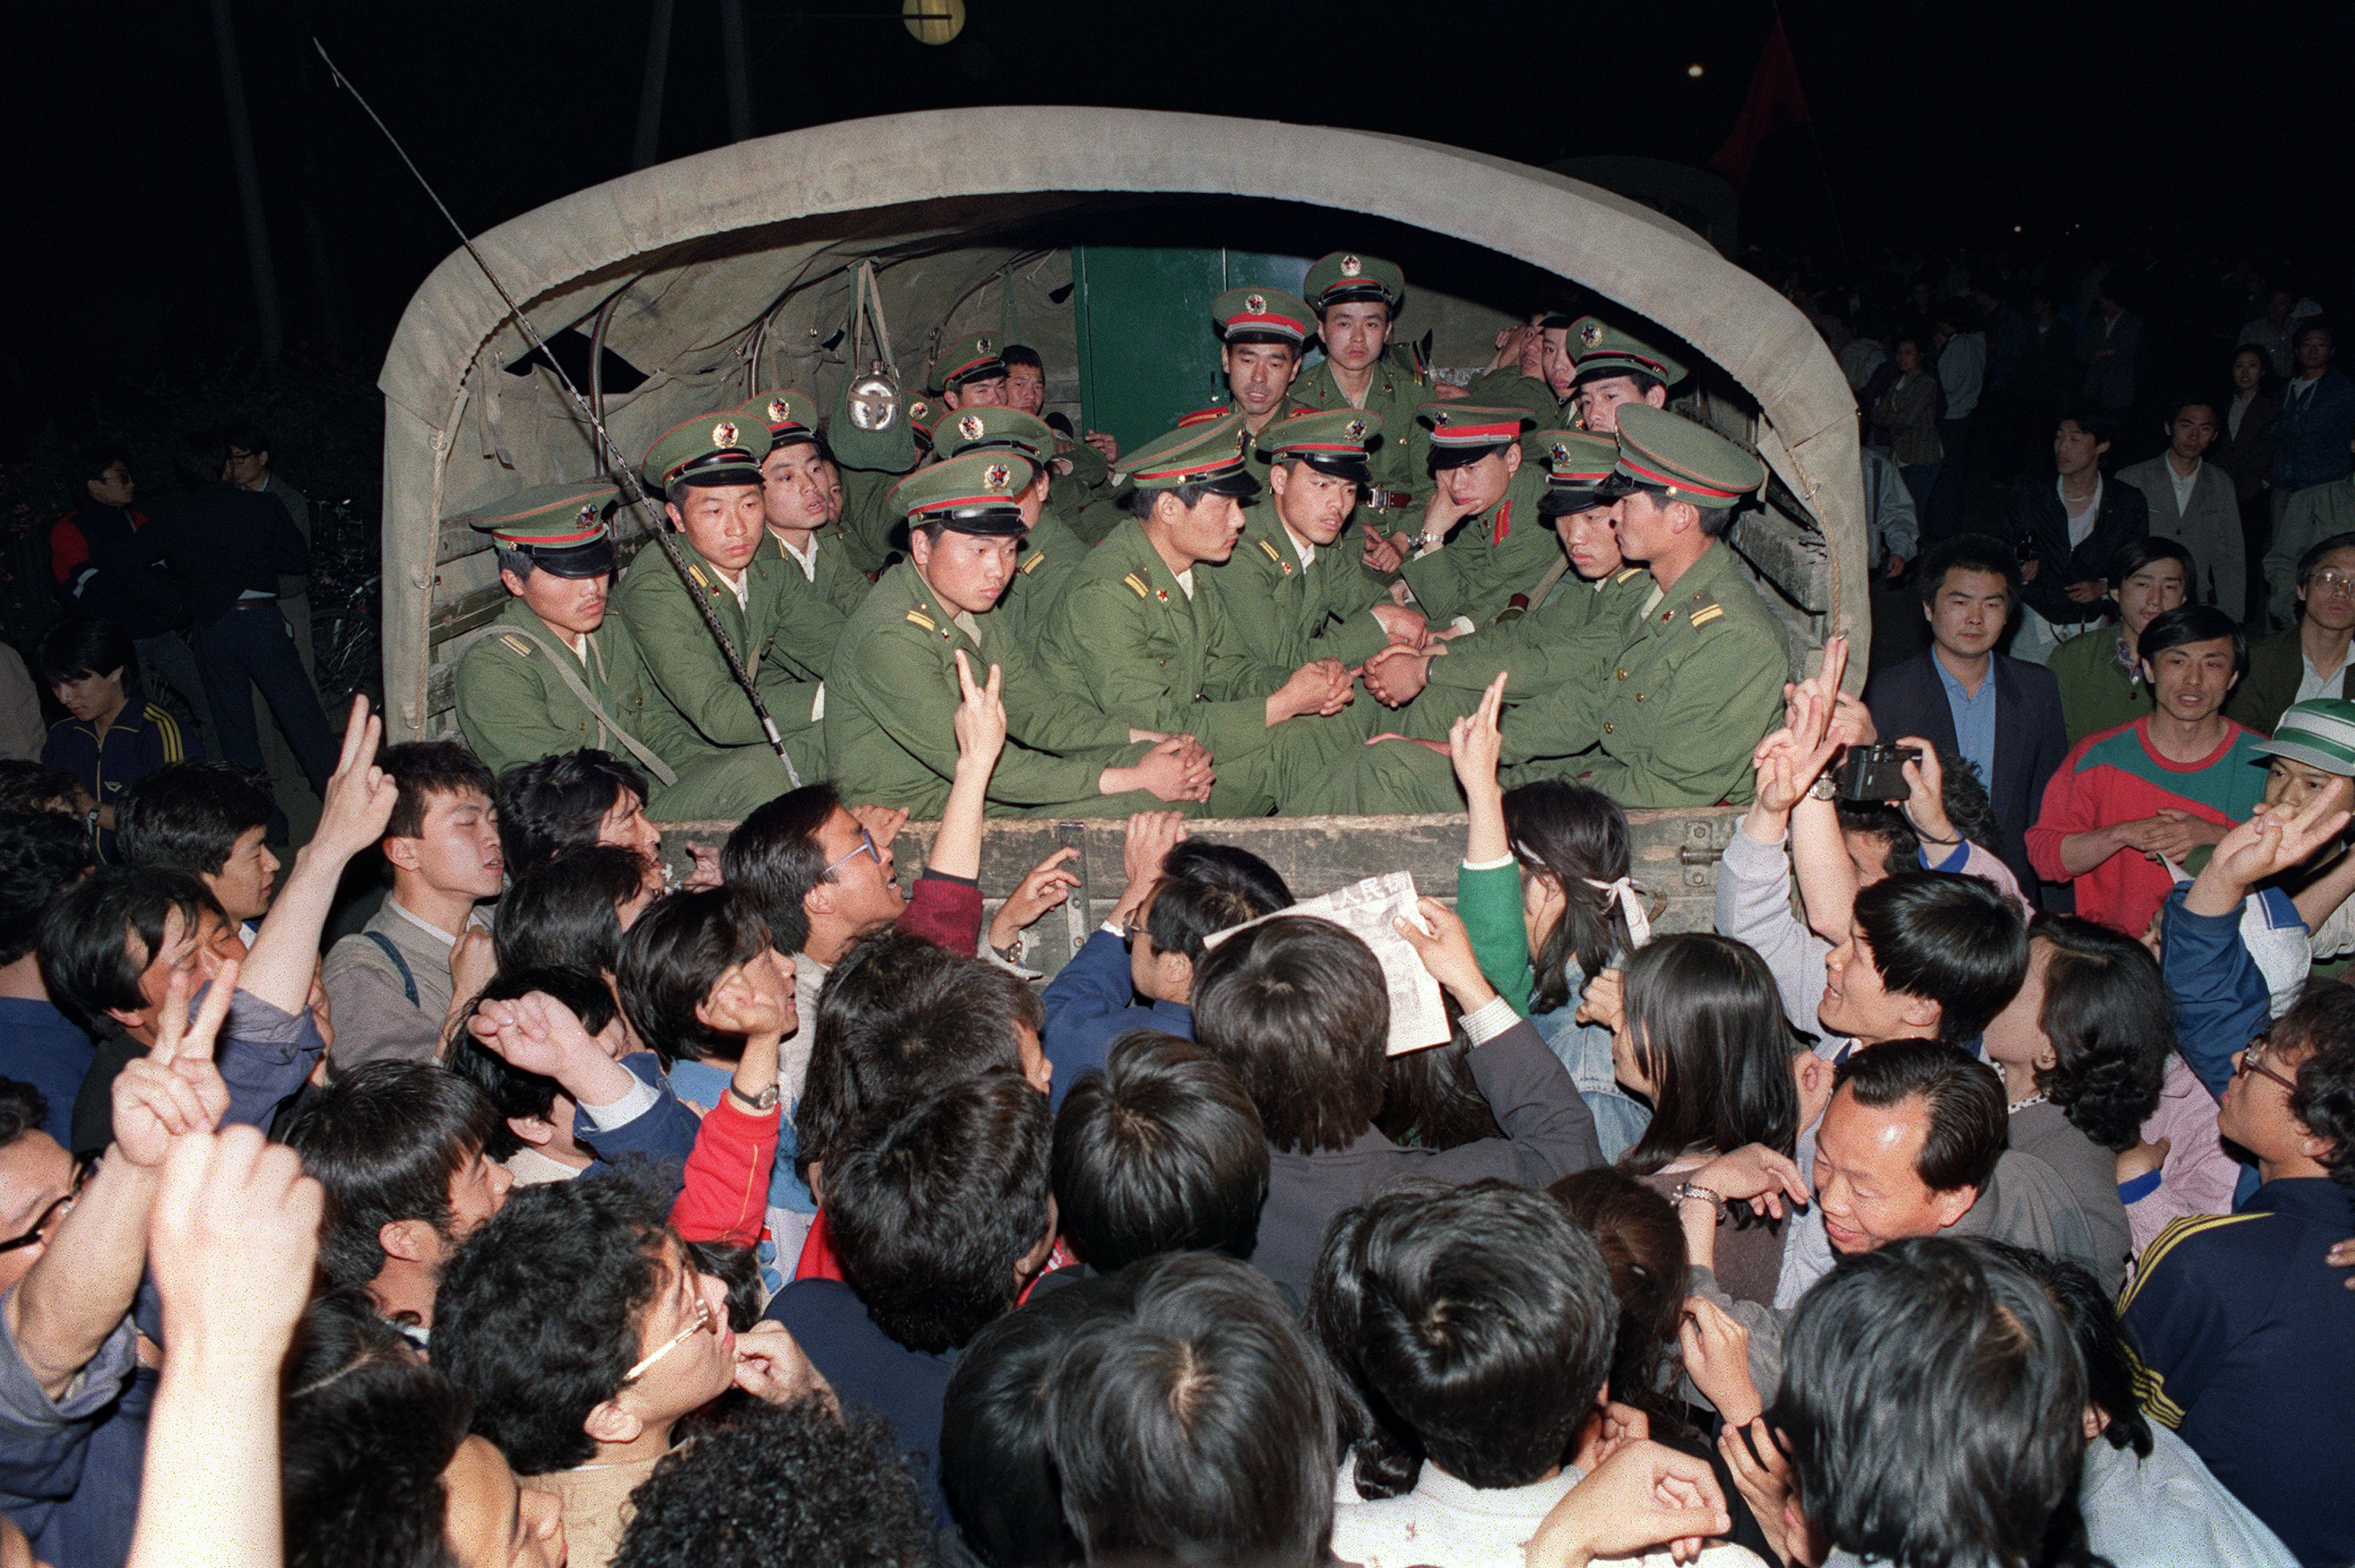 Pro-democracy demonstrators raise their fists and flash Victory signs 20 May 1989 in Beijing as they stop the military truck filled with soldiers on its way to Tiananmen Square 20 May 1989.